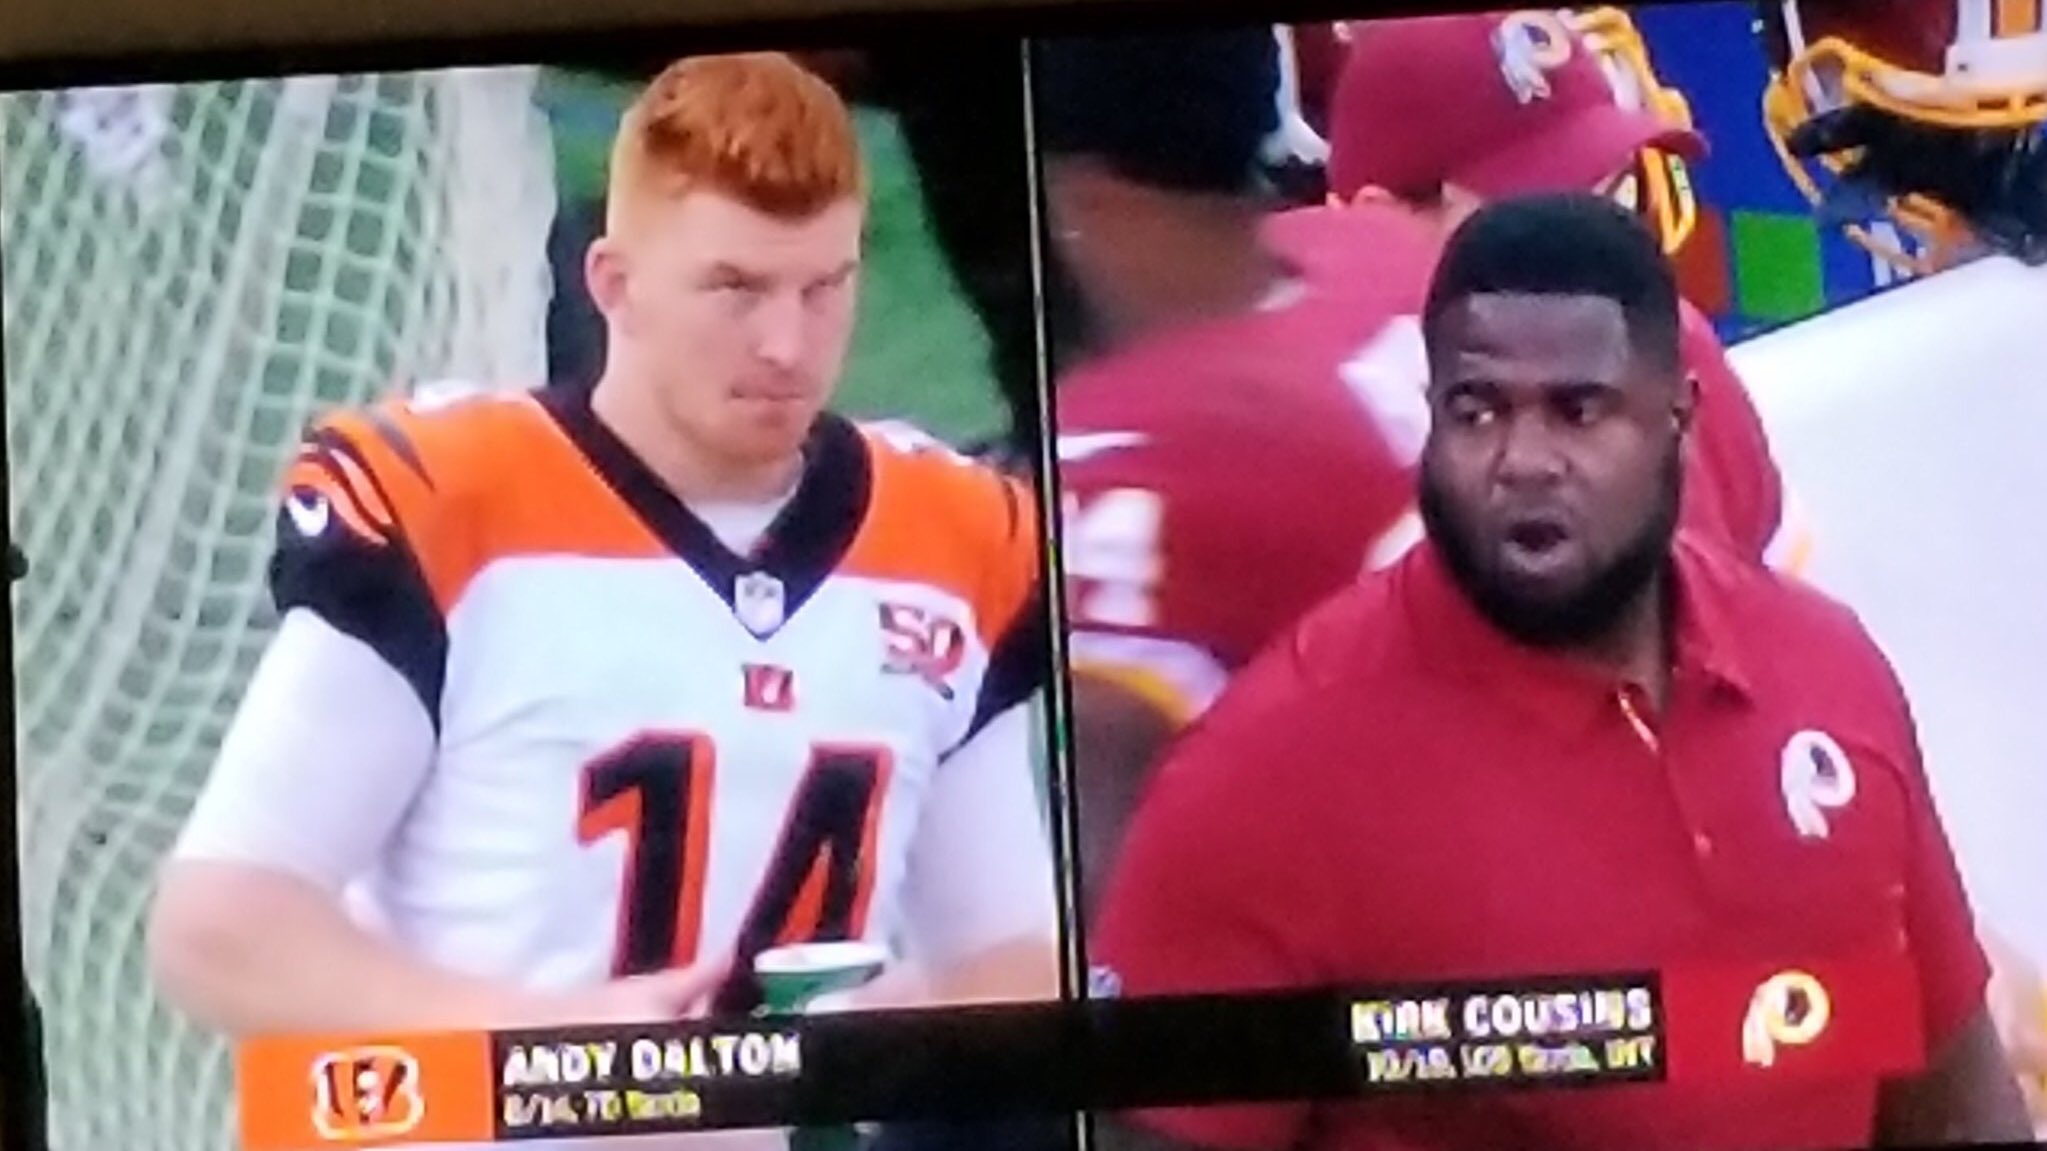 Kirk Cousins really changed in the offseason   (pic via @RealNeilB) #CINvsWAS https://t.co/4CzNx4Obb6